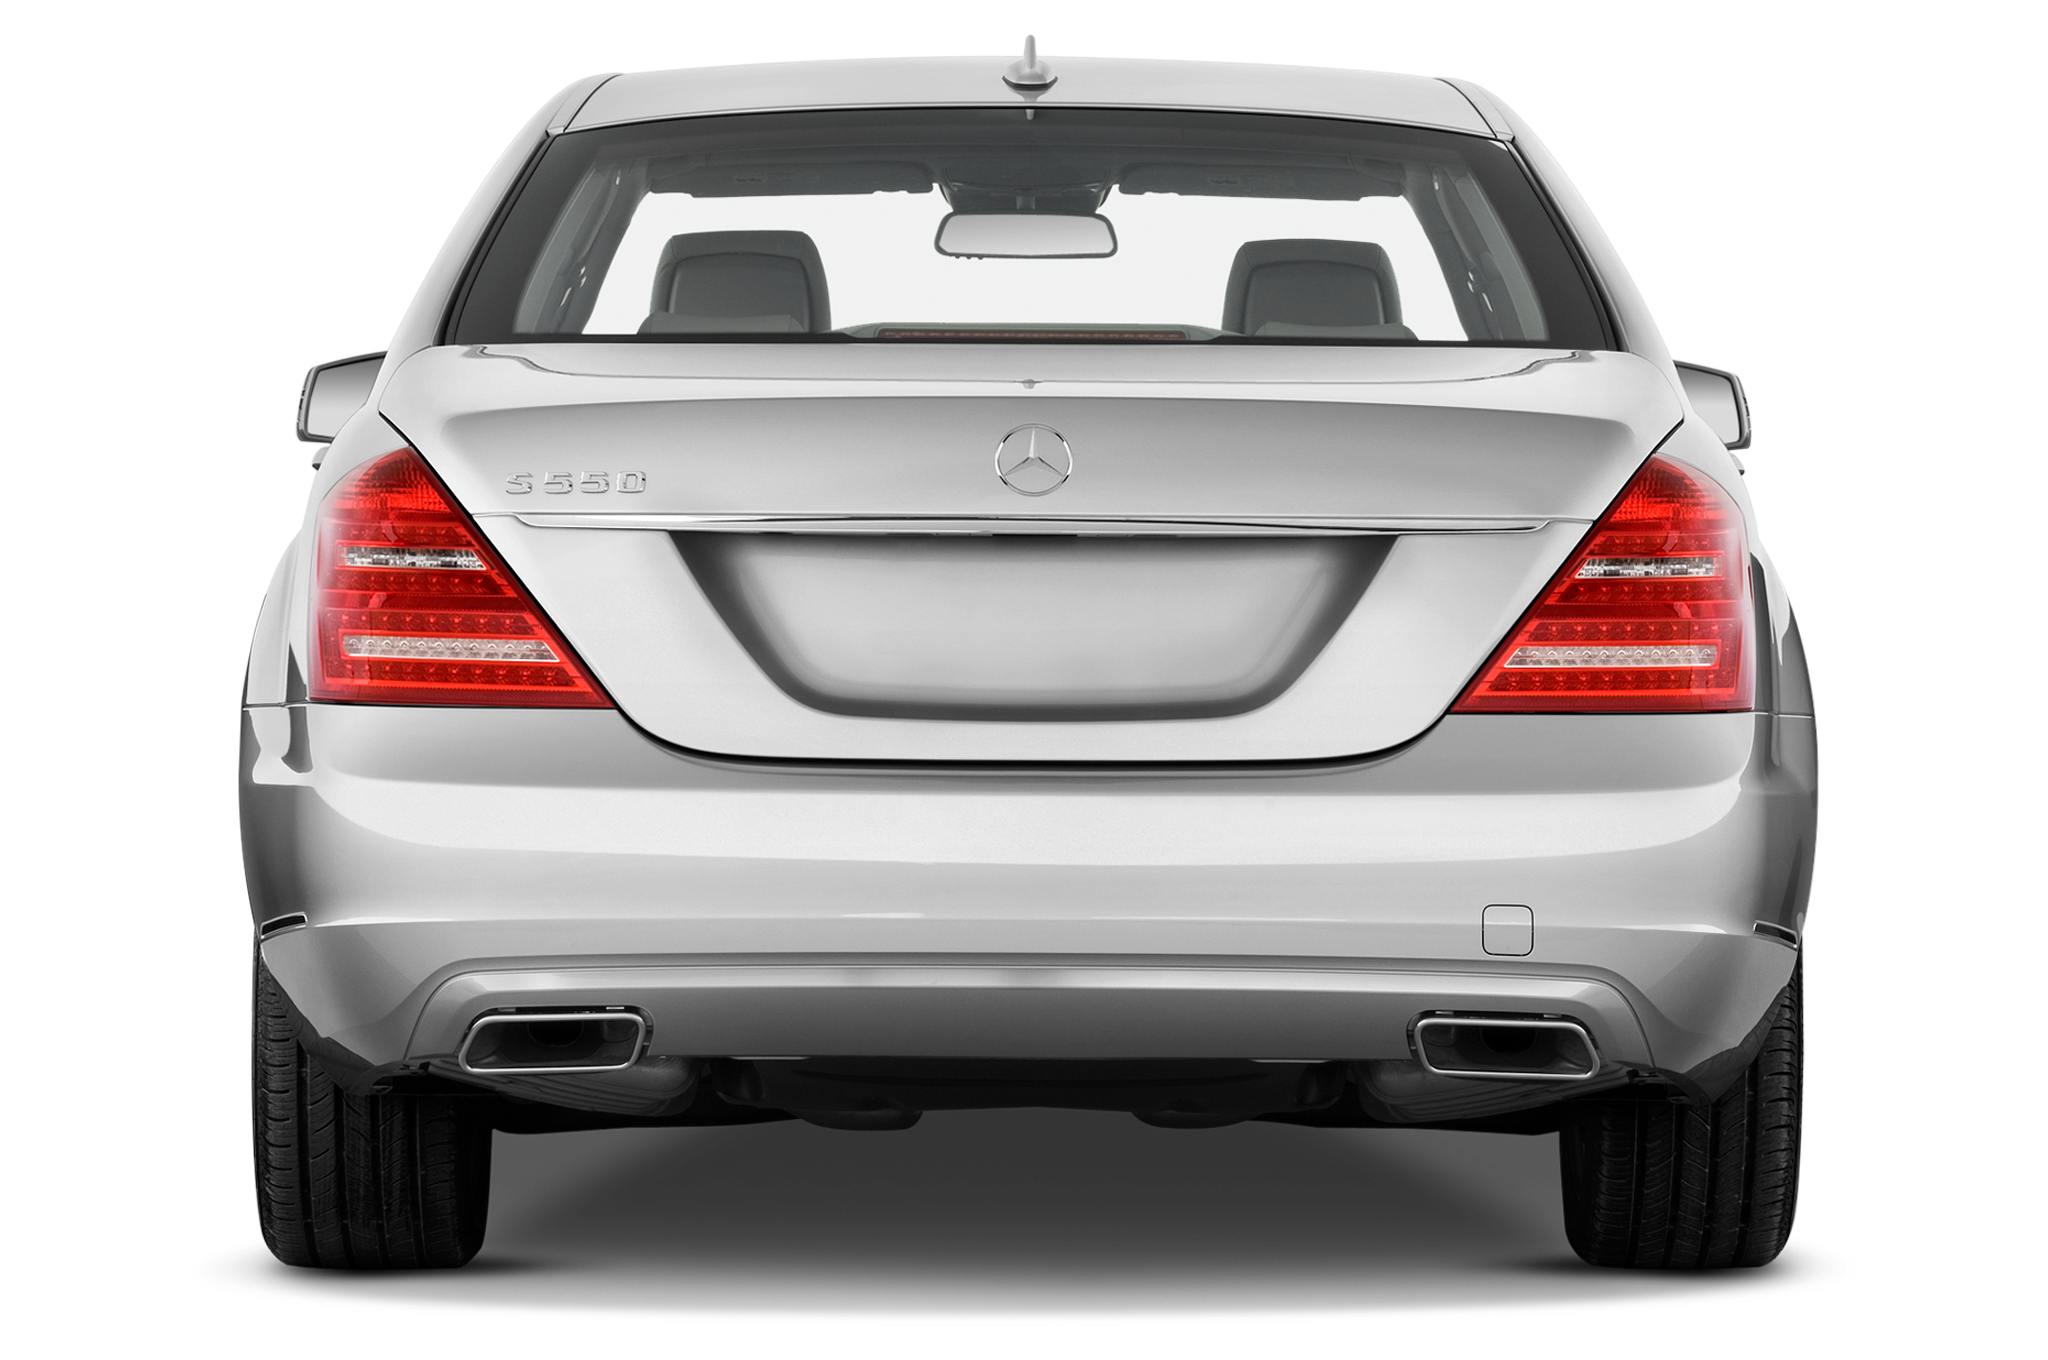 union westfield in used j nj for s linden edison available mercedes class car sdn sale county benz elizabeth